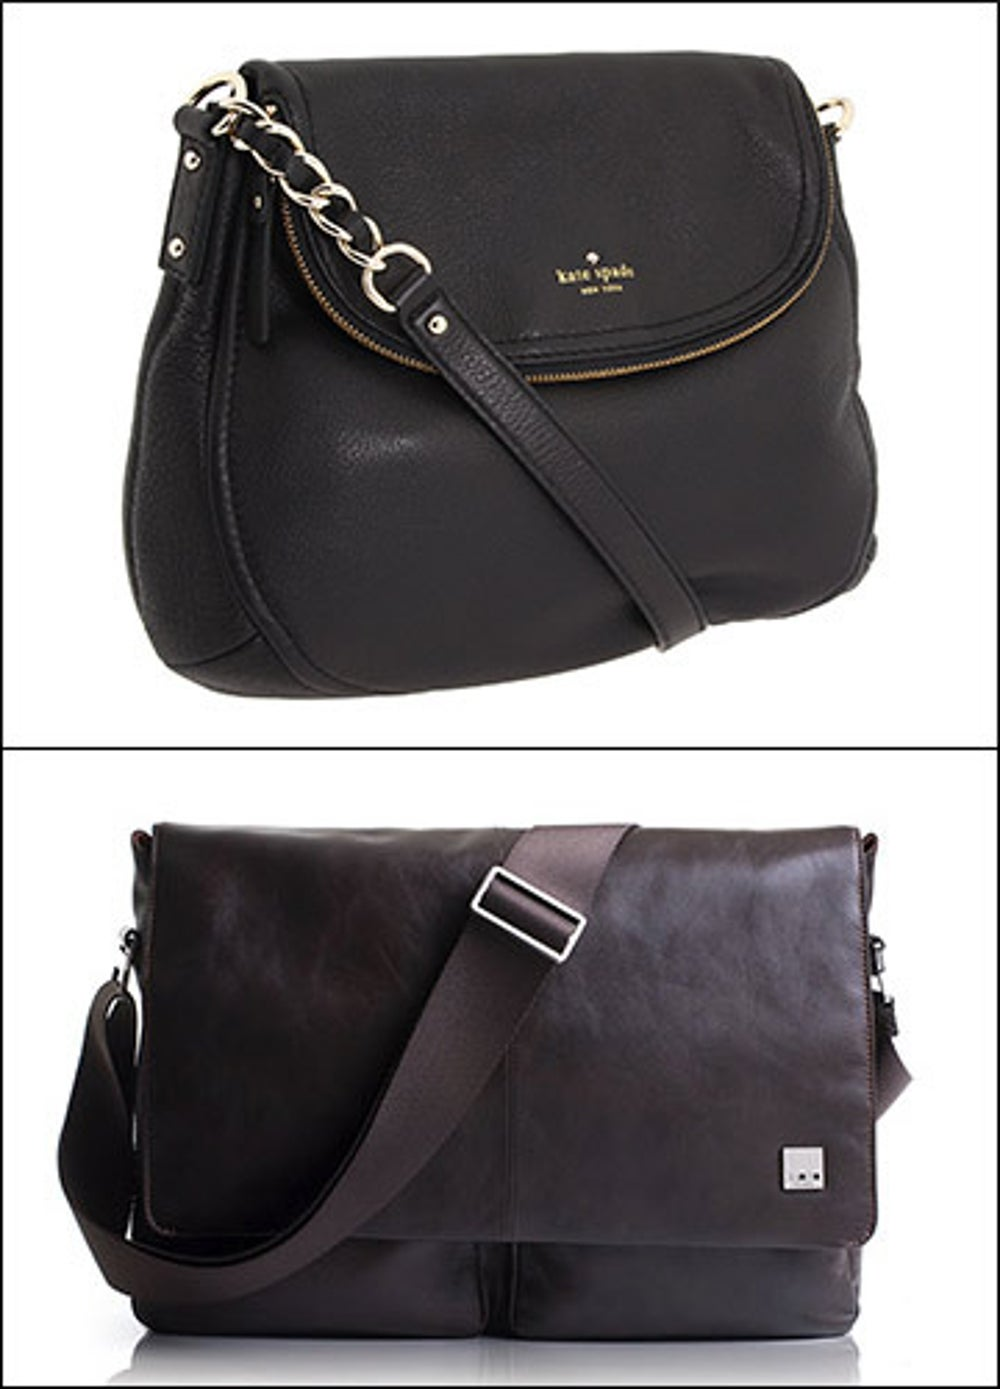 A basic handbag or briefcase.